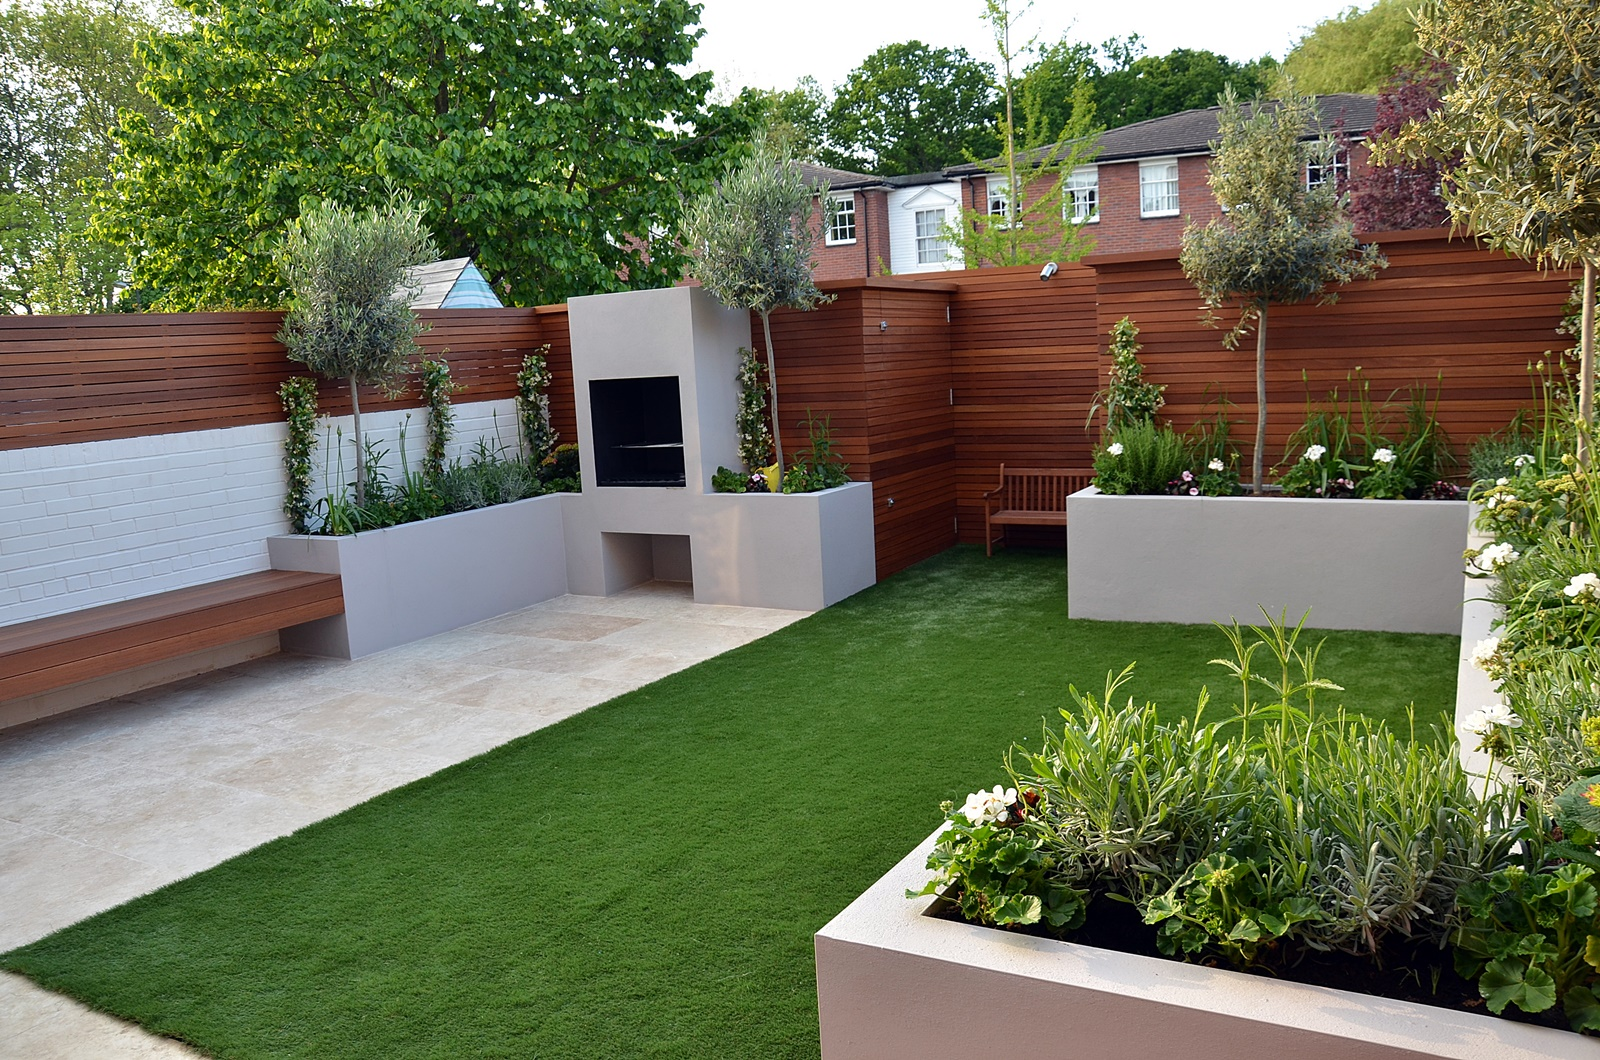 Modern garden design Fulham Chelsea Clapham Battersea ... on Backyard Patio Layout id=58615